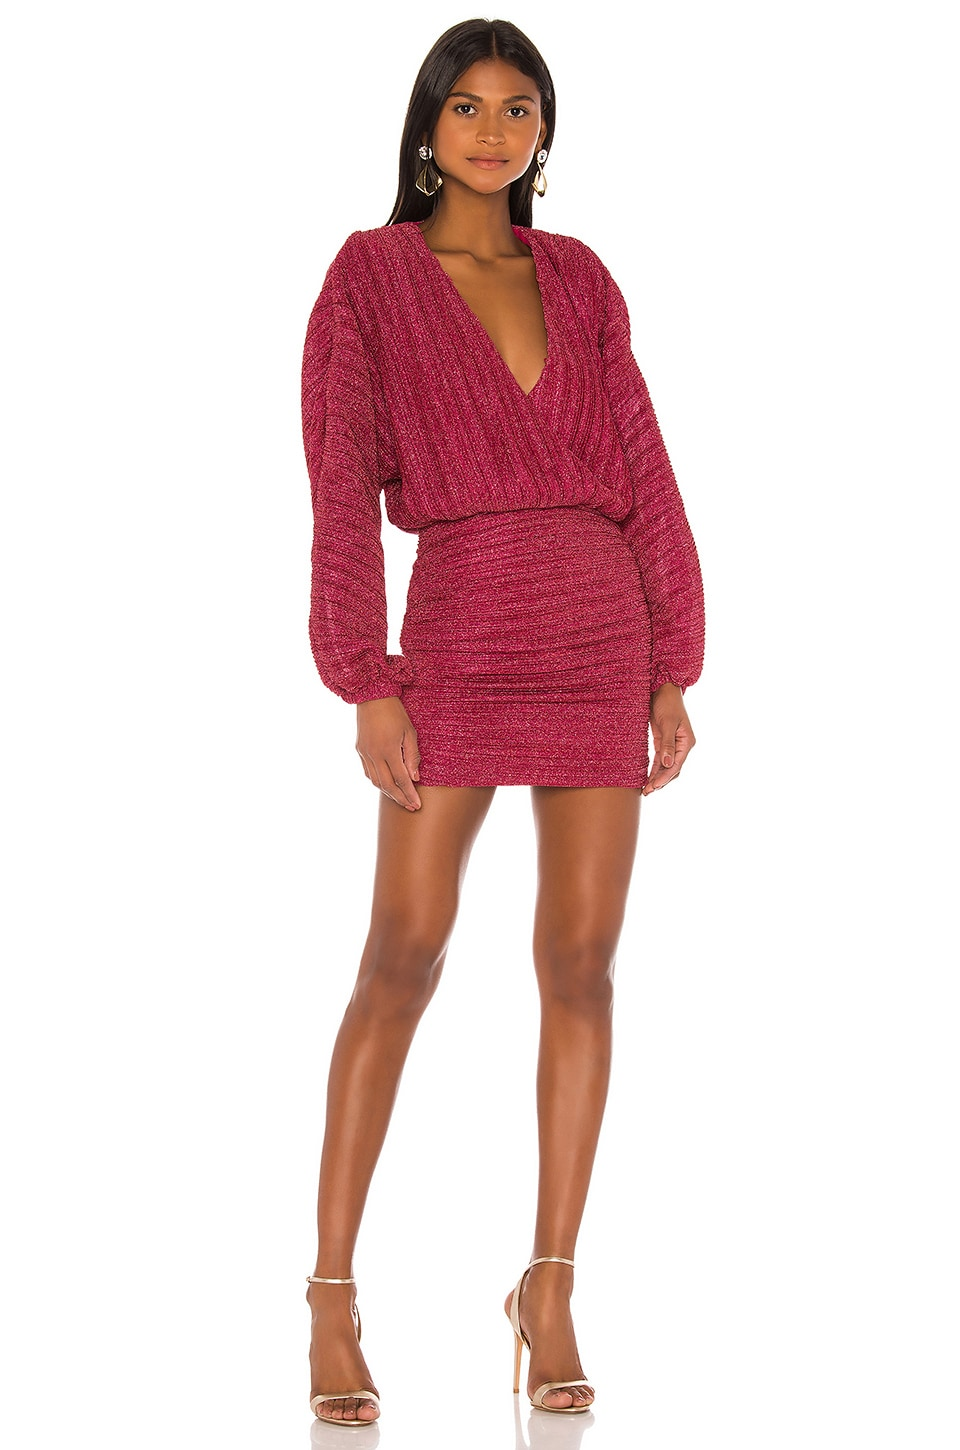 NBD Illusion Mini Dress in Fuchsia